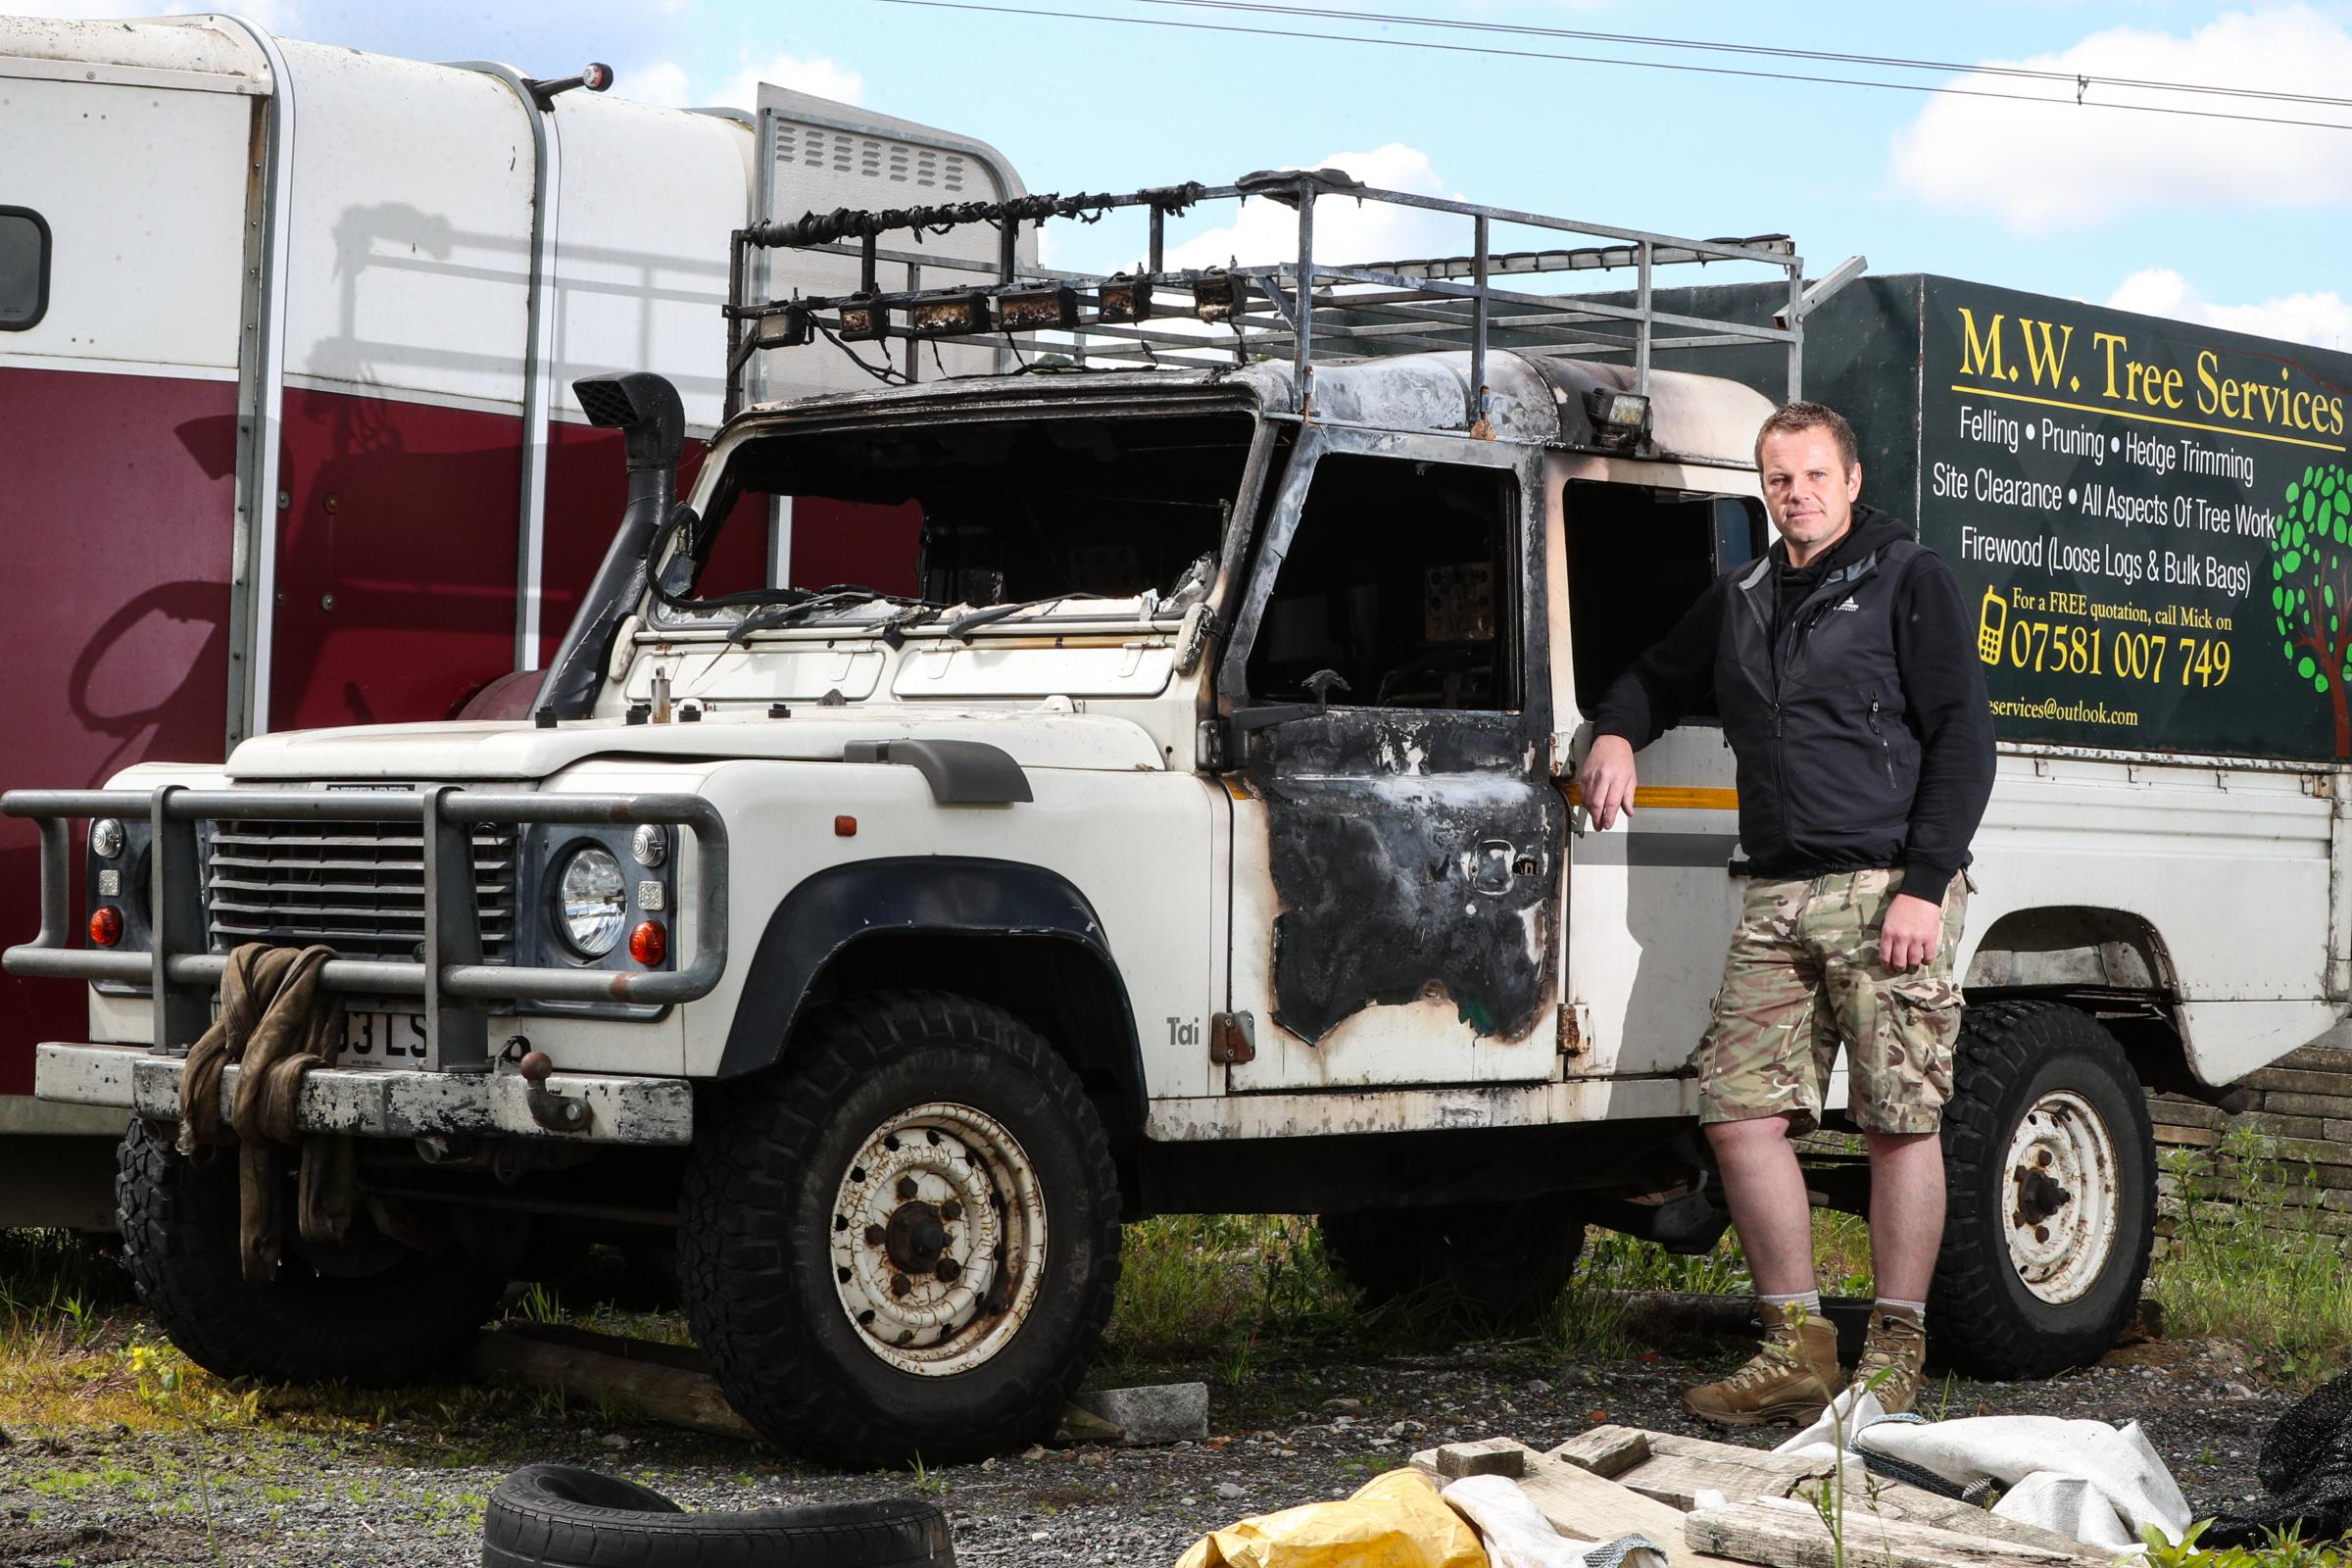 WATCH: Shocking footage shows tree surgeon's Land Rover Defender being torched